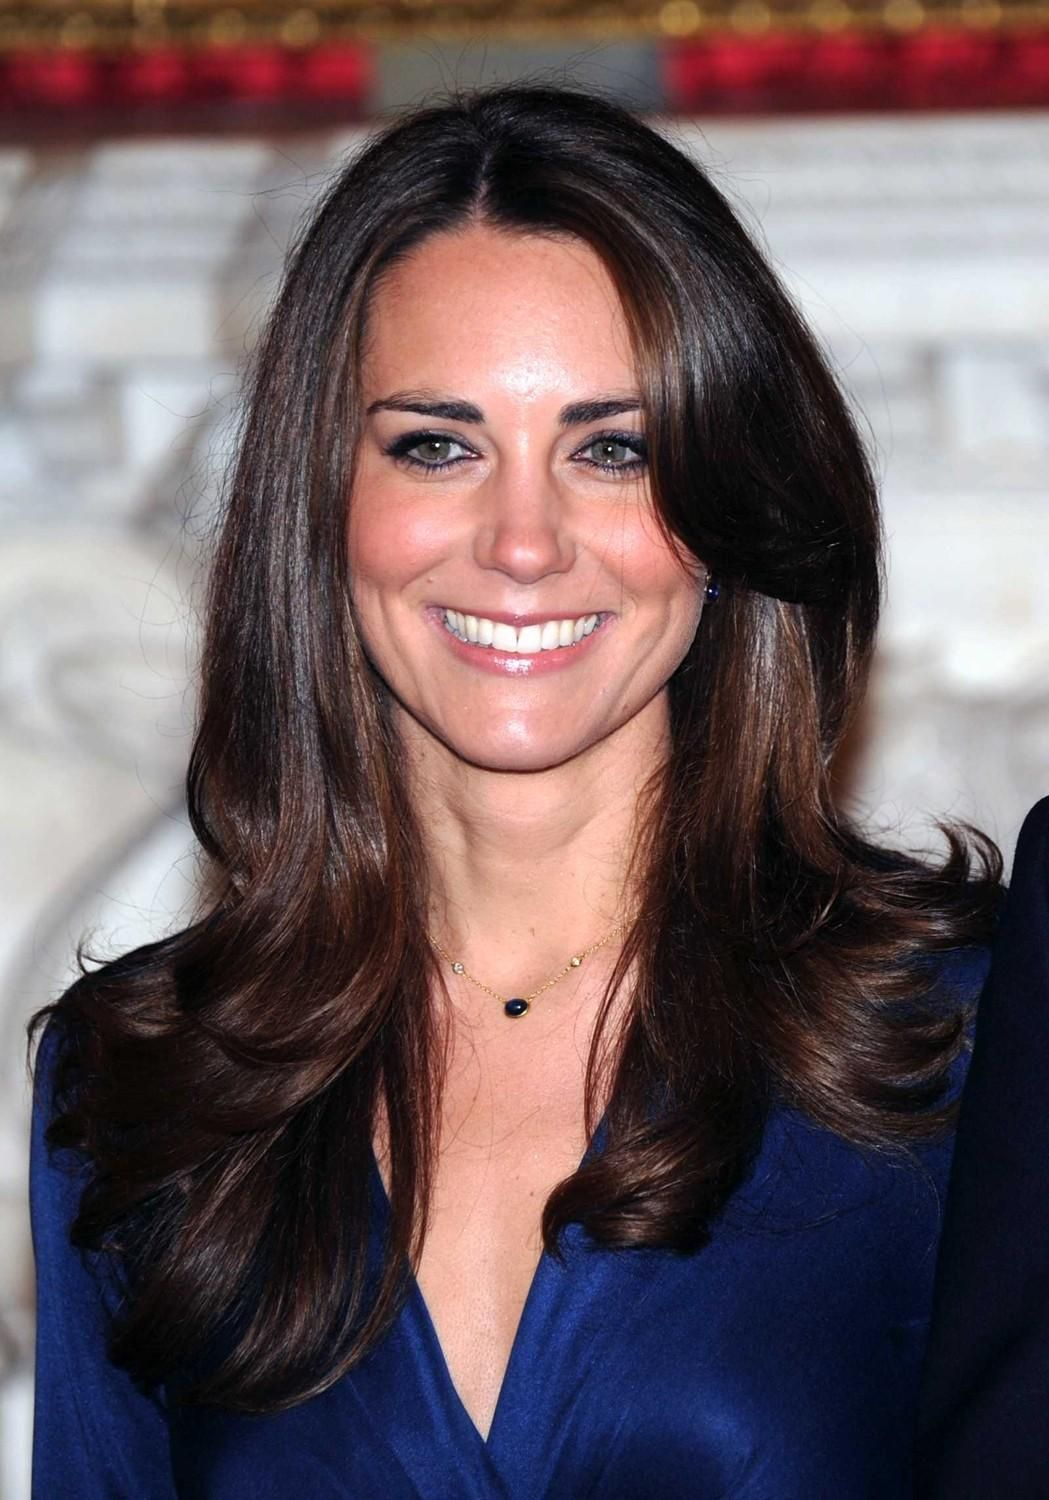 E Pit O Me A Person Or Thing That Is A Perfect Example Of A Particular Quality Or Type She I Kate Middleton Hair Kate Middleton Height Kate Middleton Makeup